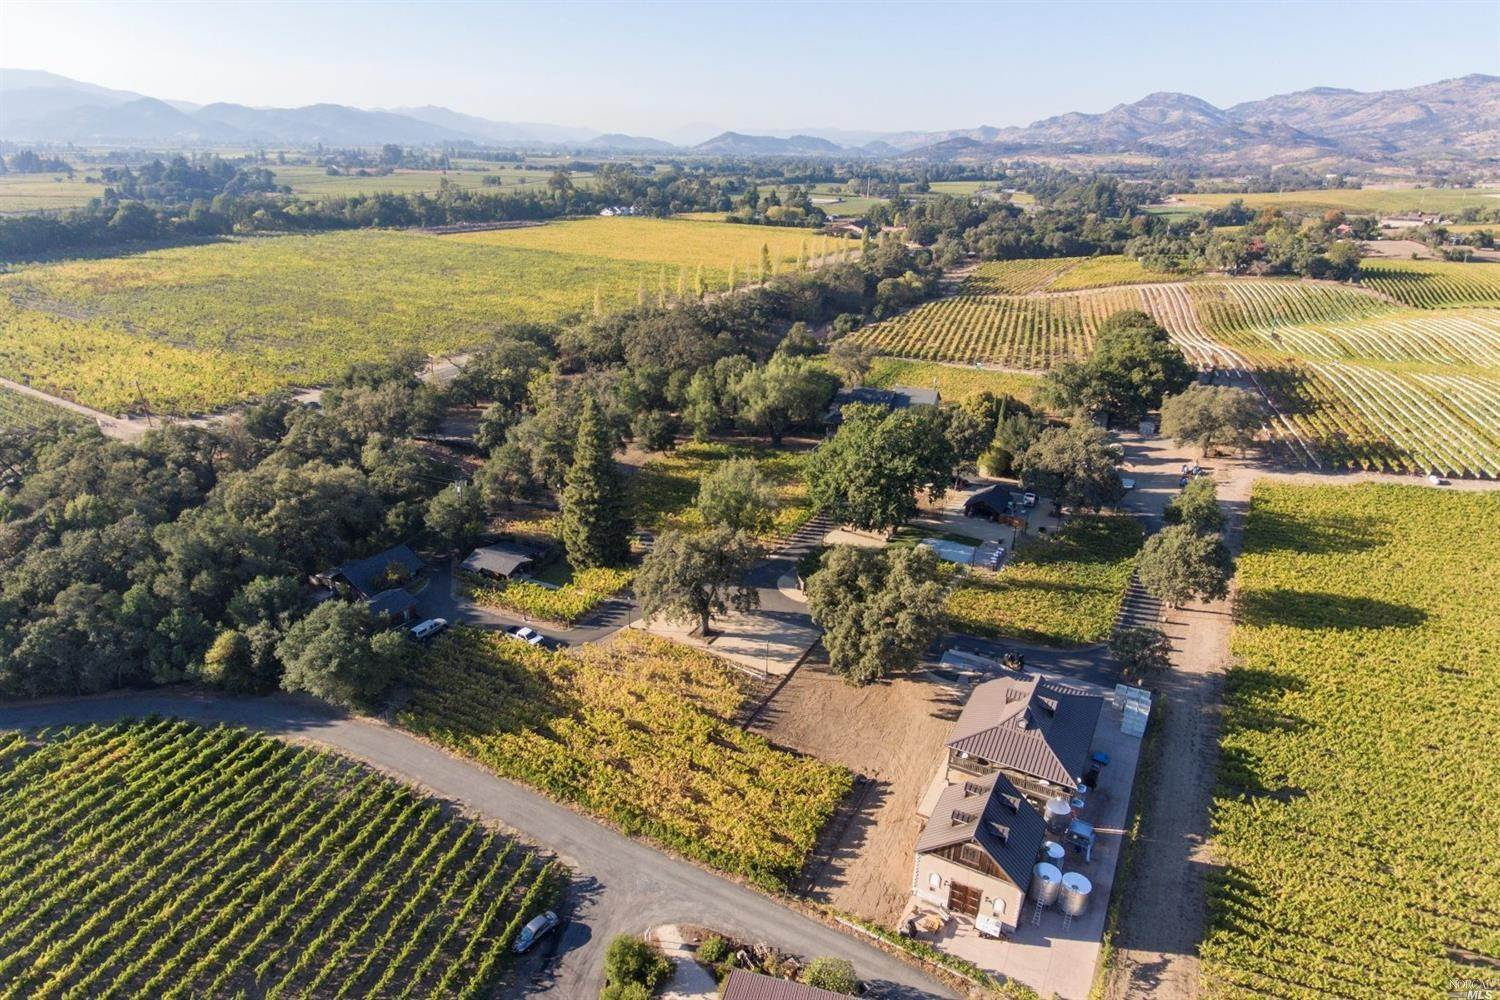 Single Family Homes for Sale at 2344 Silverado Trail, Napa Napa, California 94558 United States